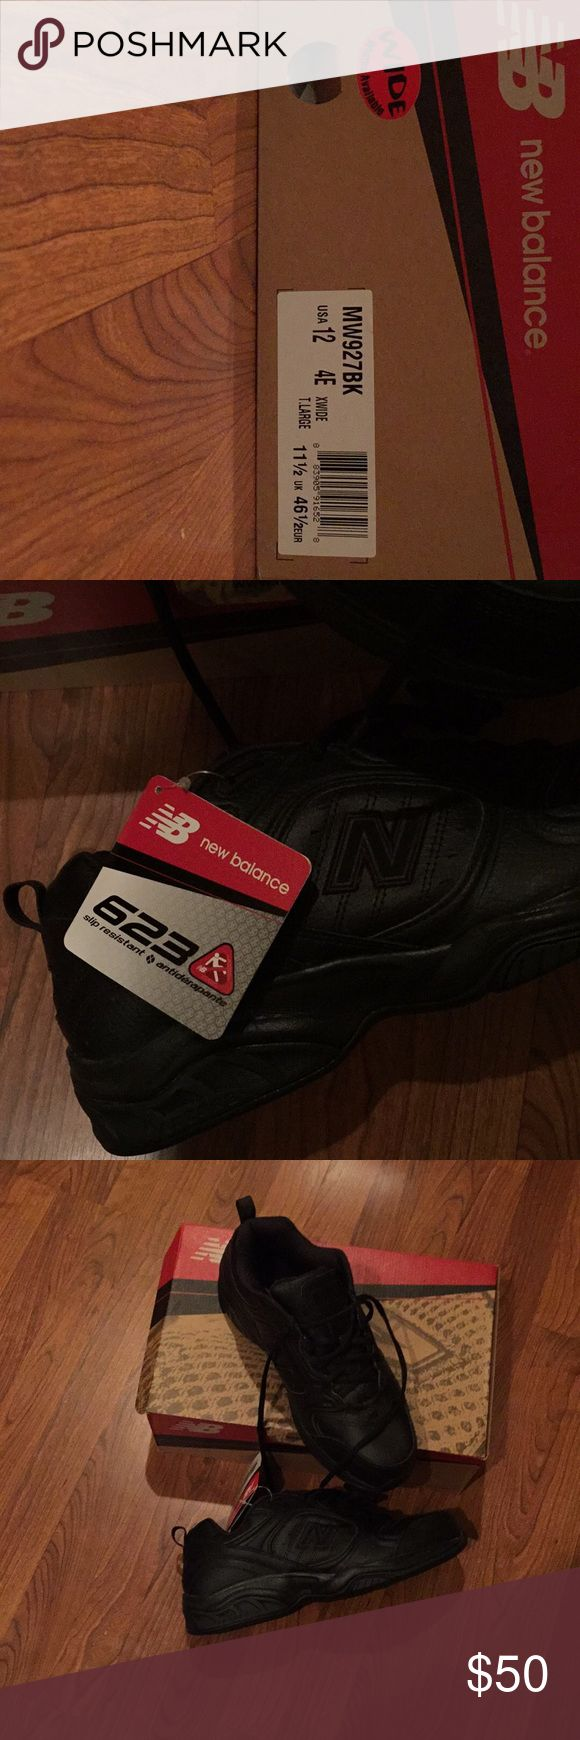 Men's New Balance Black sports shoes. Size 12 4E Brand New with tags and box. Wide shoe. 12 EEEE. Model 623. Anti slip. New Balance Shoes Athletic Shoes